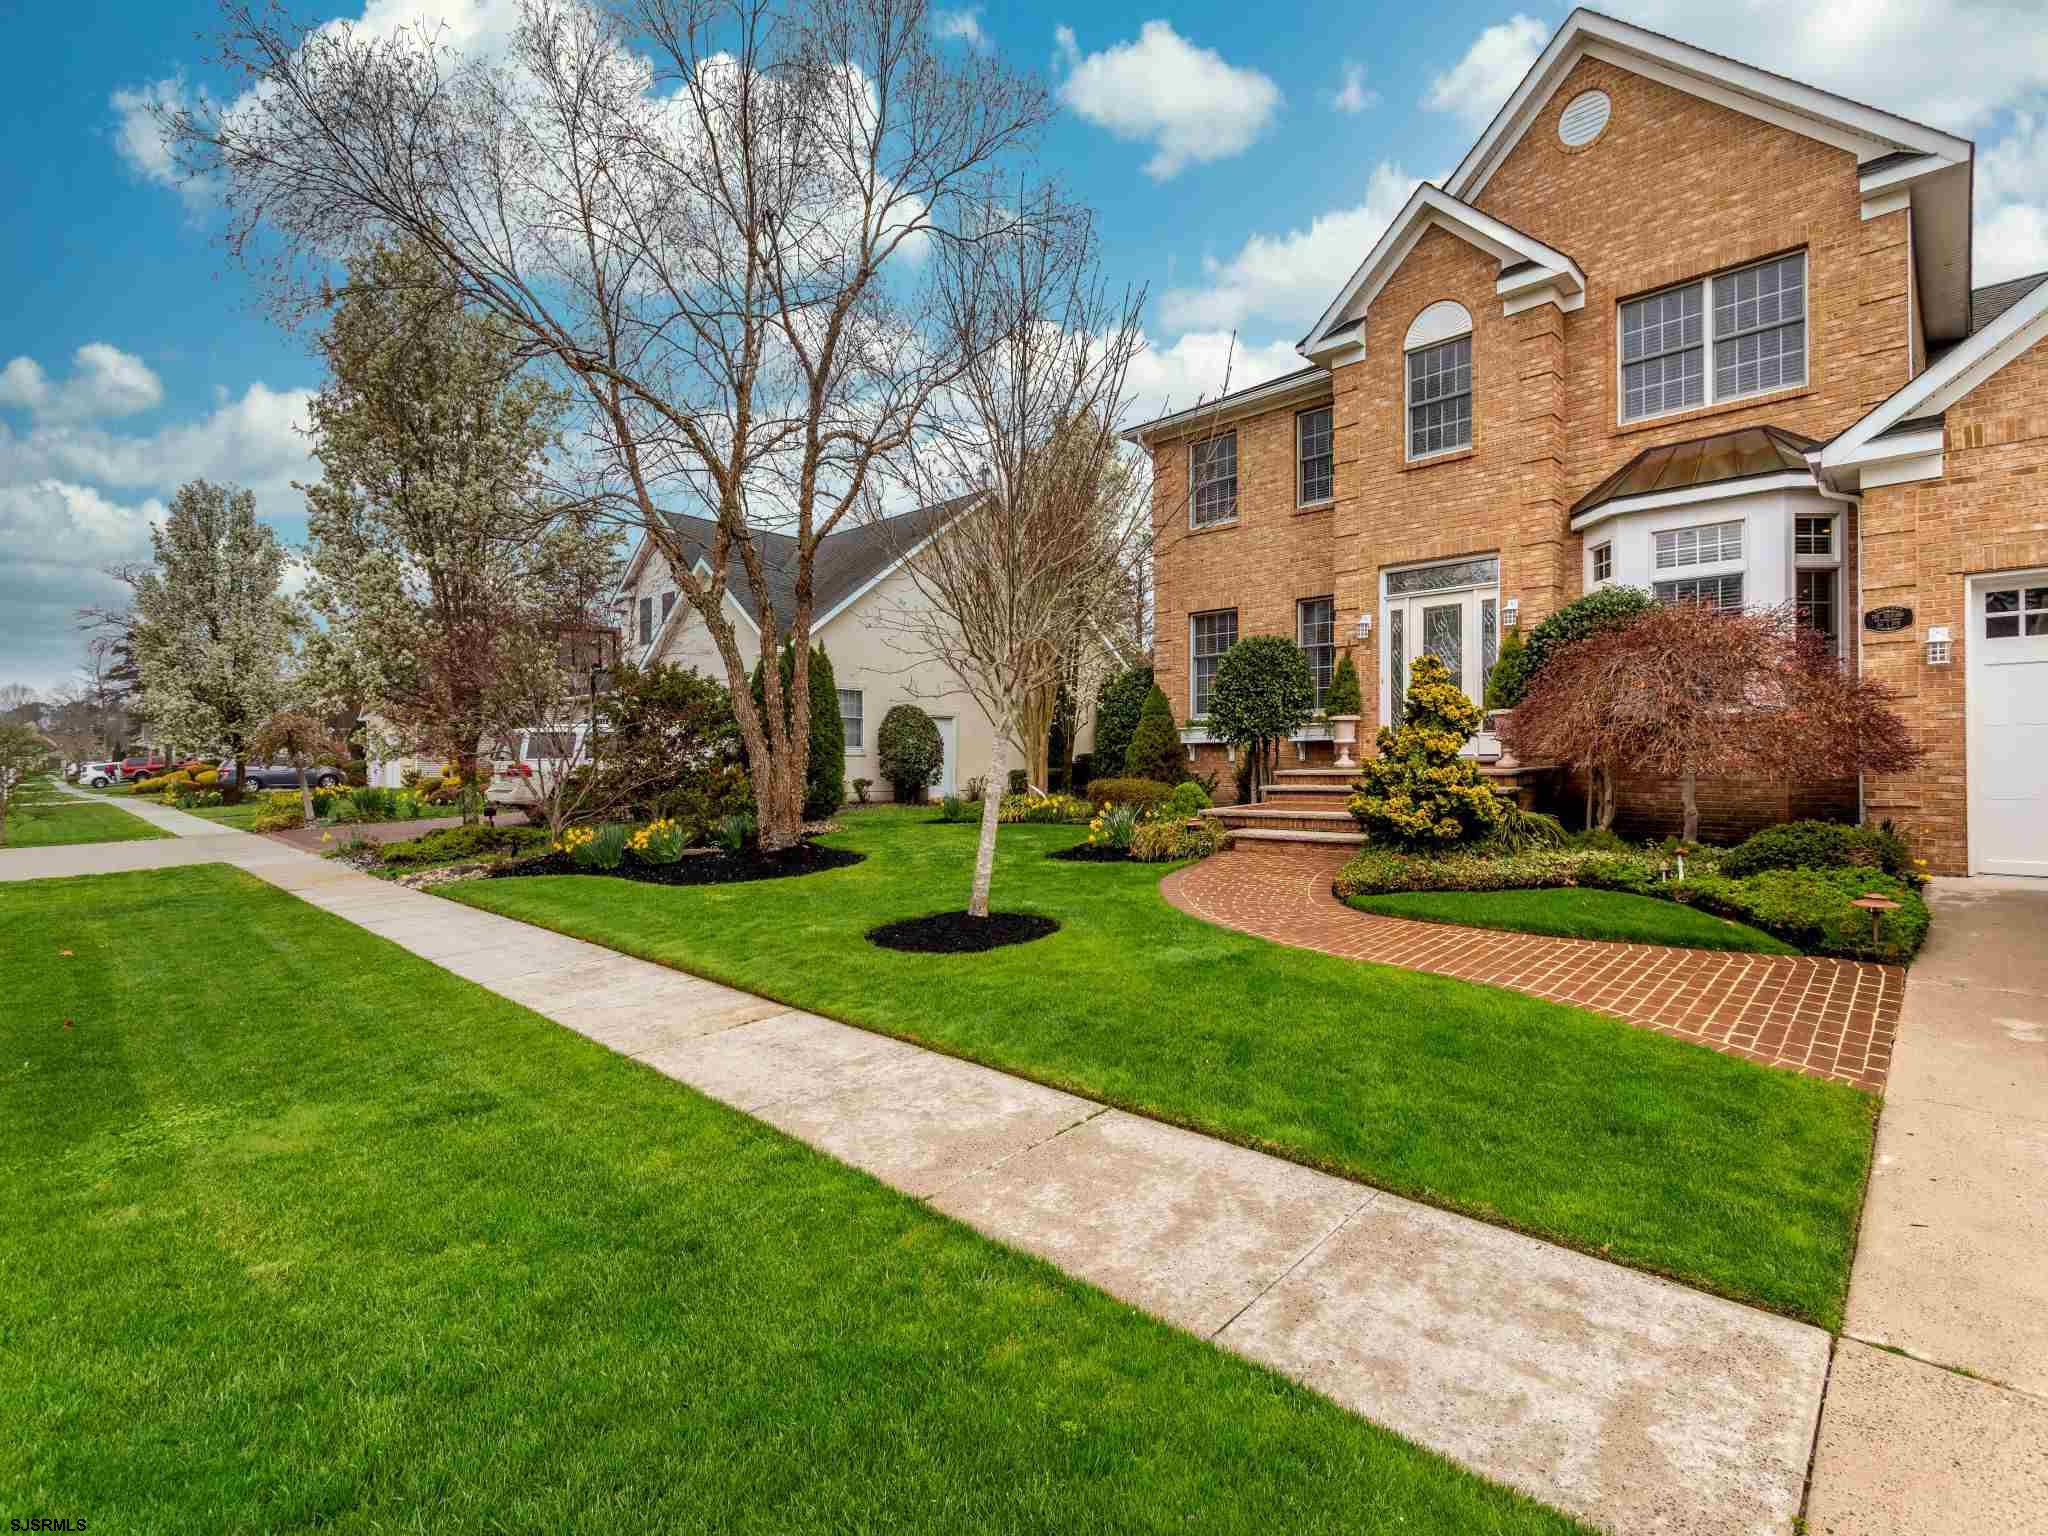 """Welcome to 38 Pebble Beach Dr."""" Where Dreams Do Come True"""".This property is Absolutely Breathtaking!"""